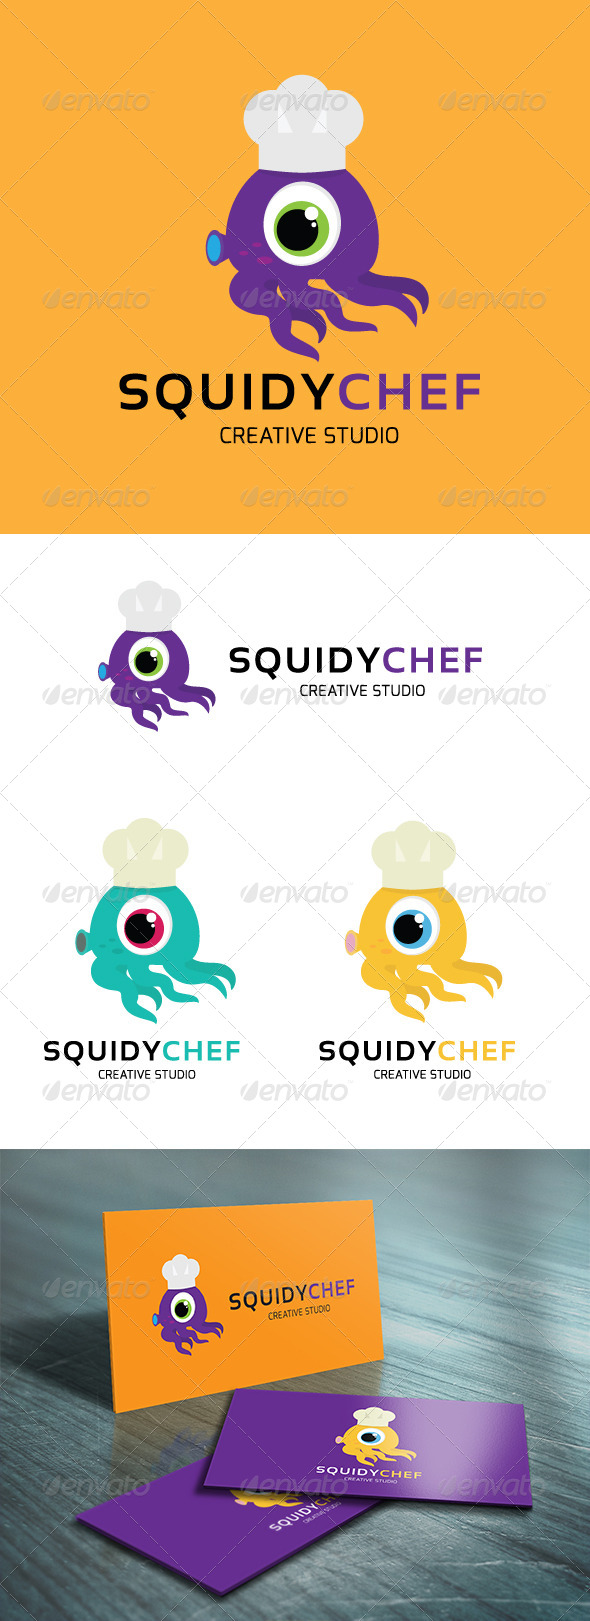 GraphicRiver Squidy Chef 5131987